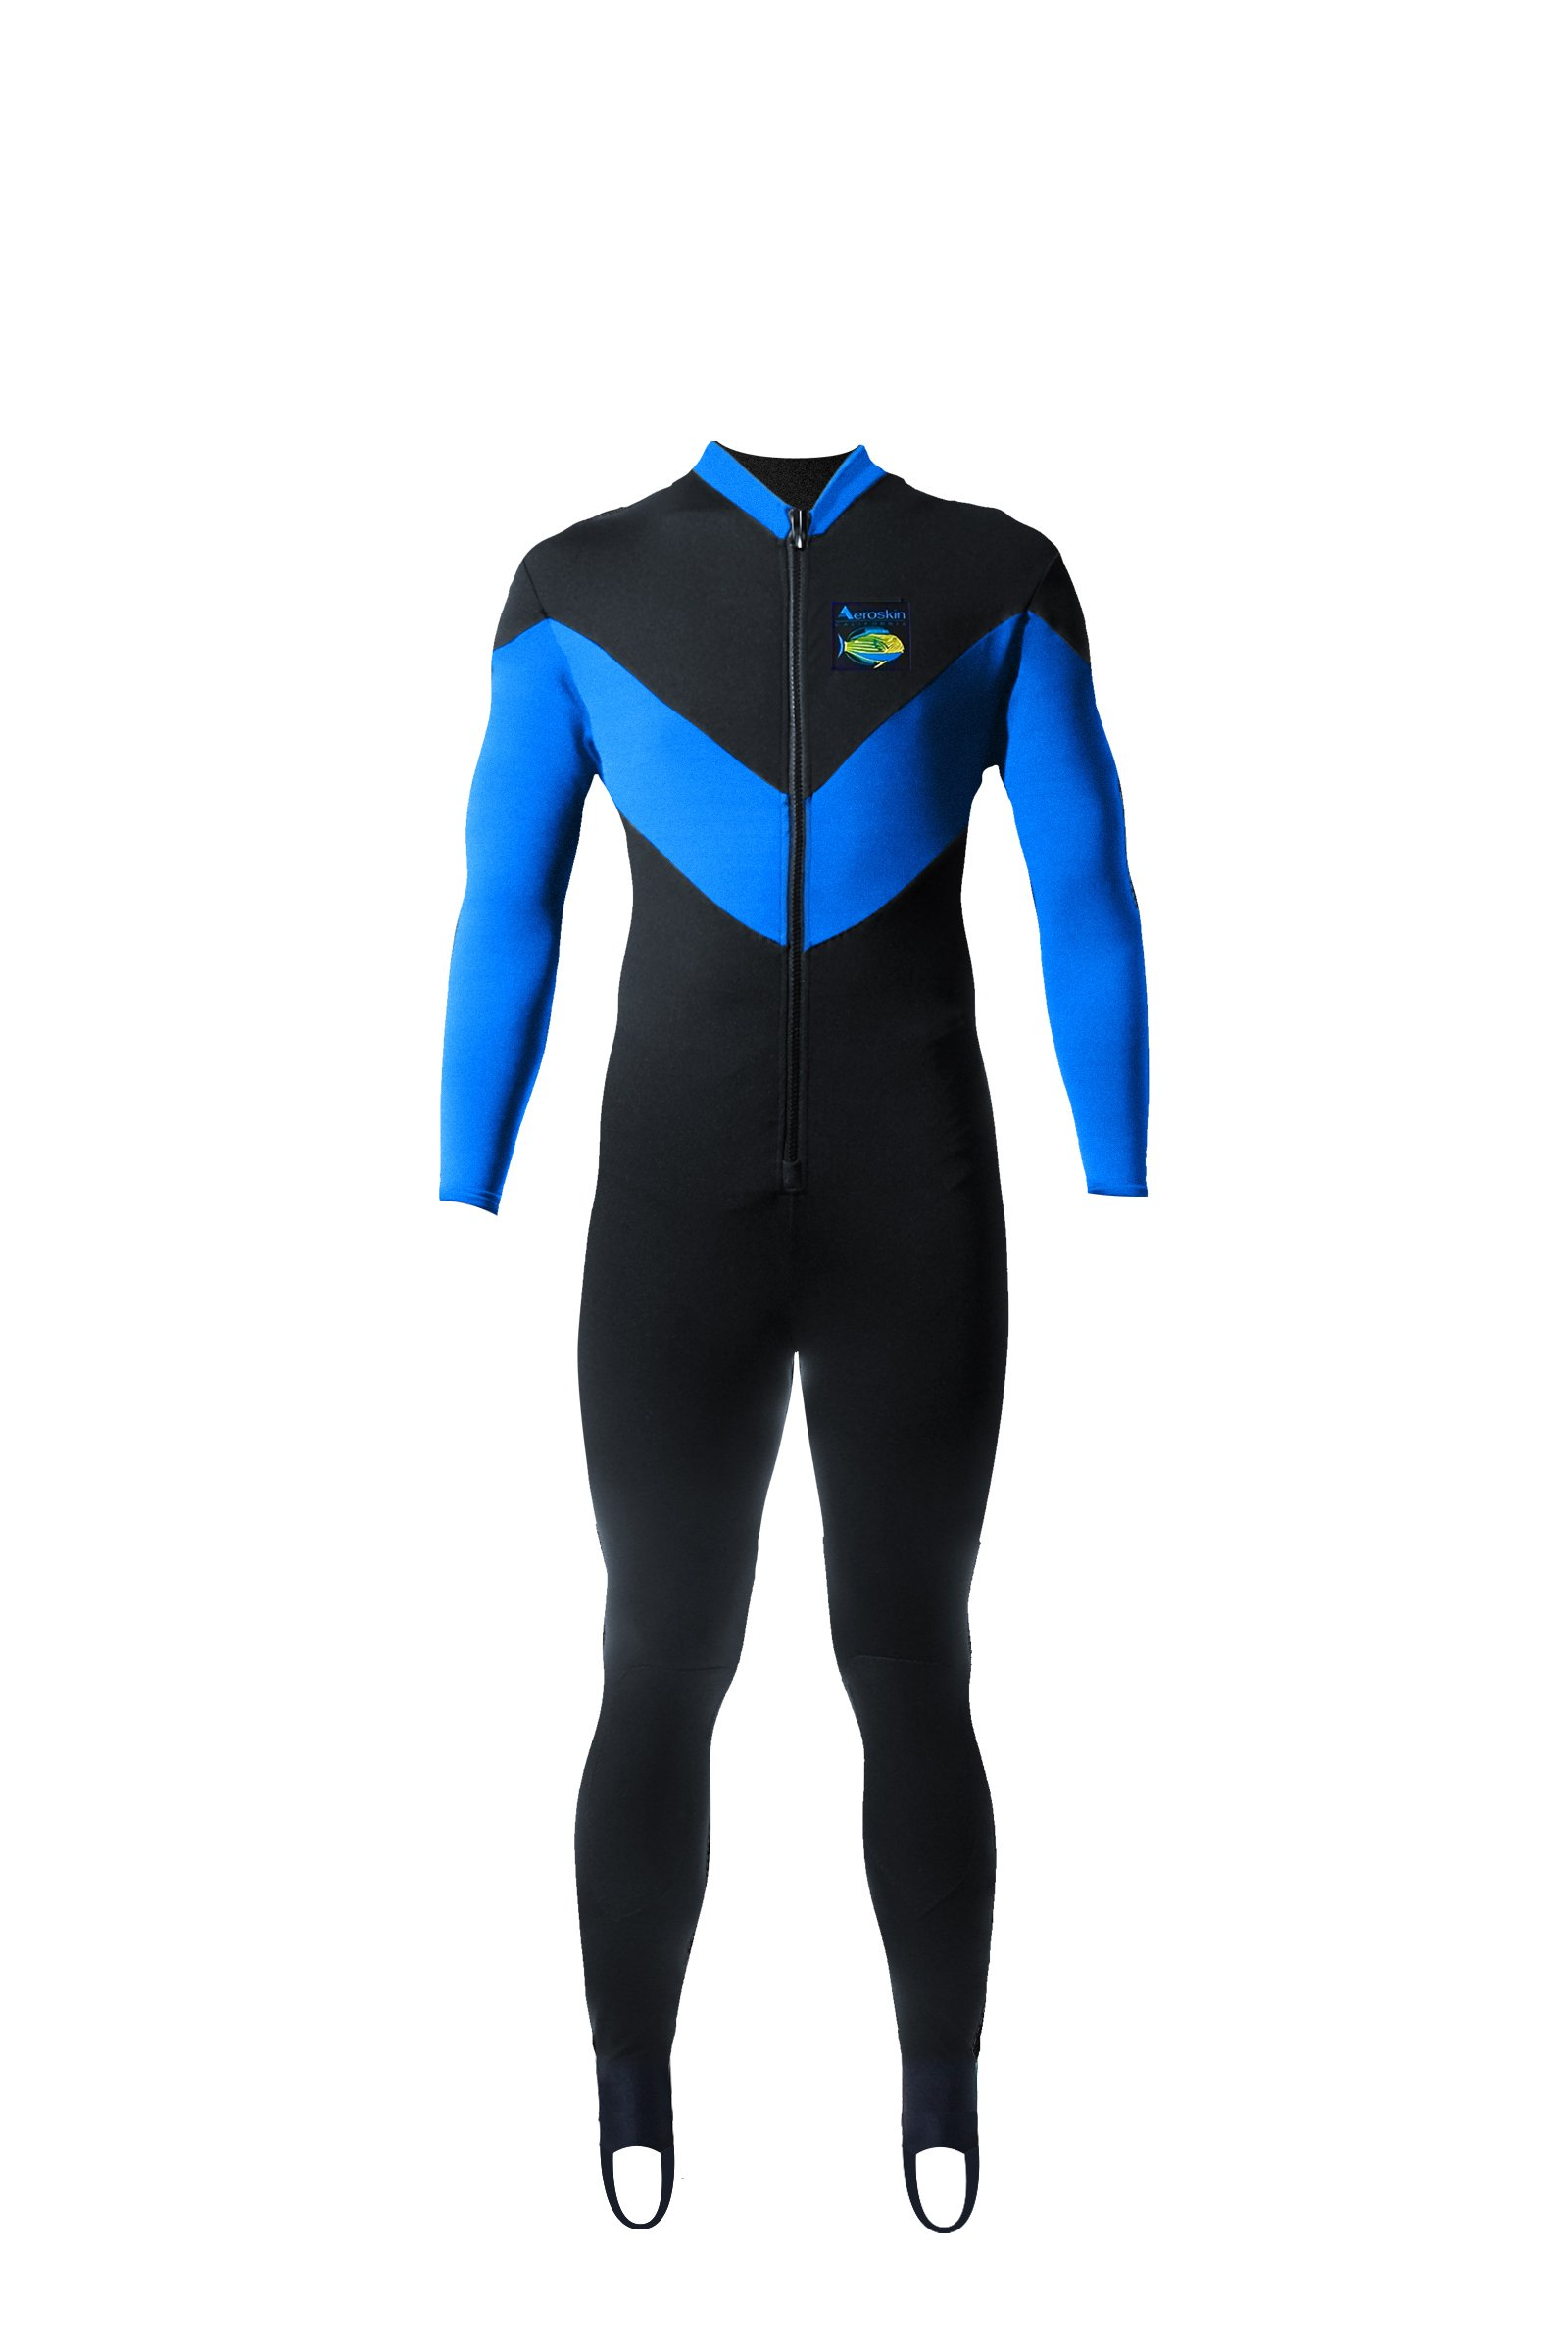 Aeroskin Full Body Suit Spine/Kidney with Kevlar